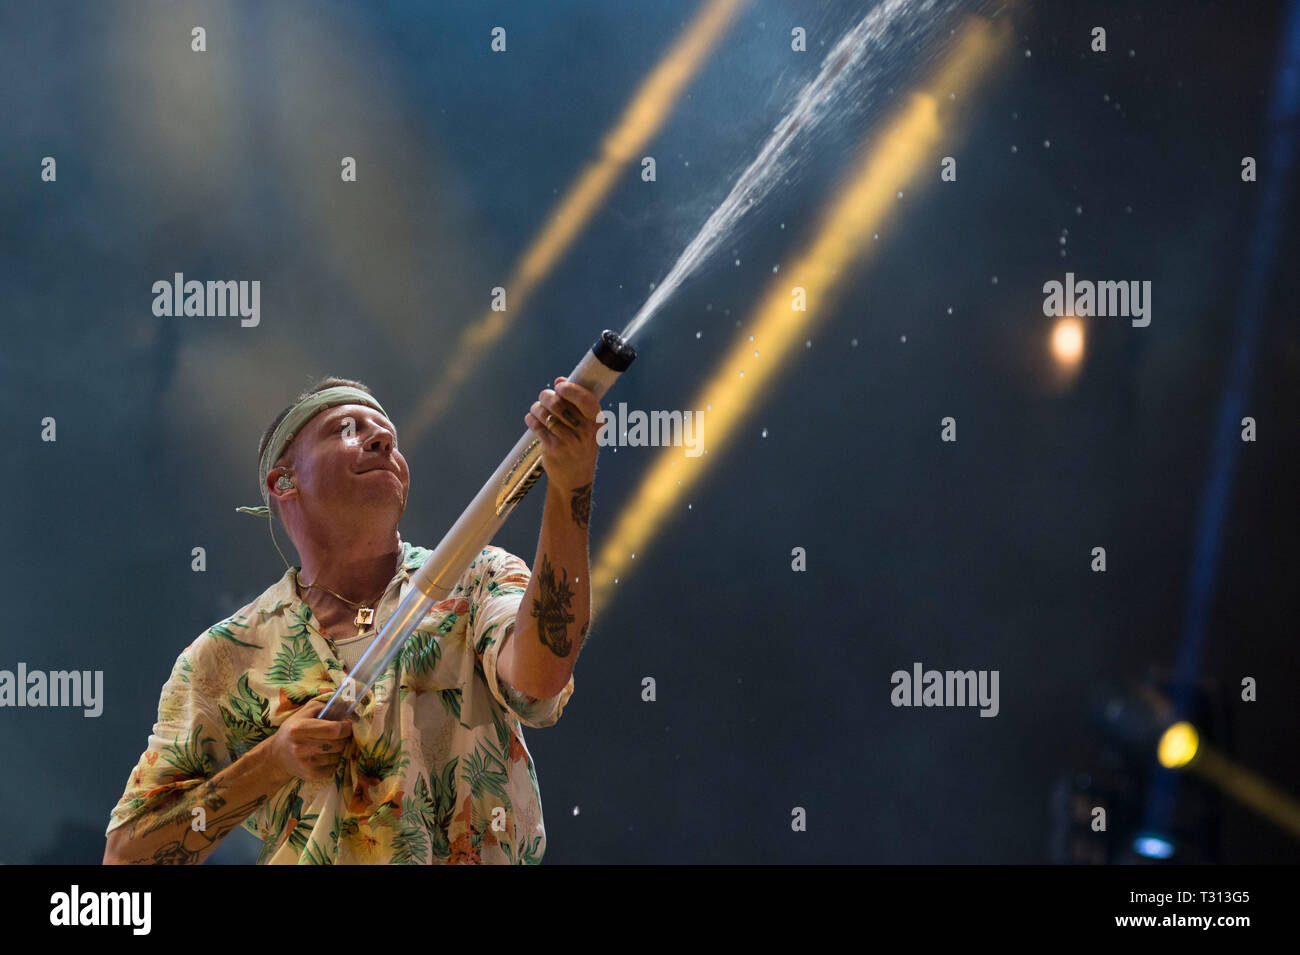 Sao Paulo, Brazil. 05th Apr, 2019. Macklemore performs at the Lollapalooza 2019 festival, held at the Autodromo de Interlagos in São Paulo on Friday, 05. (PHOTO: LEVI BIANCO/BRAZIL PHOTO PRESS) Credit: Brazil Photo Press/Alamy Live News - Stock Image